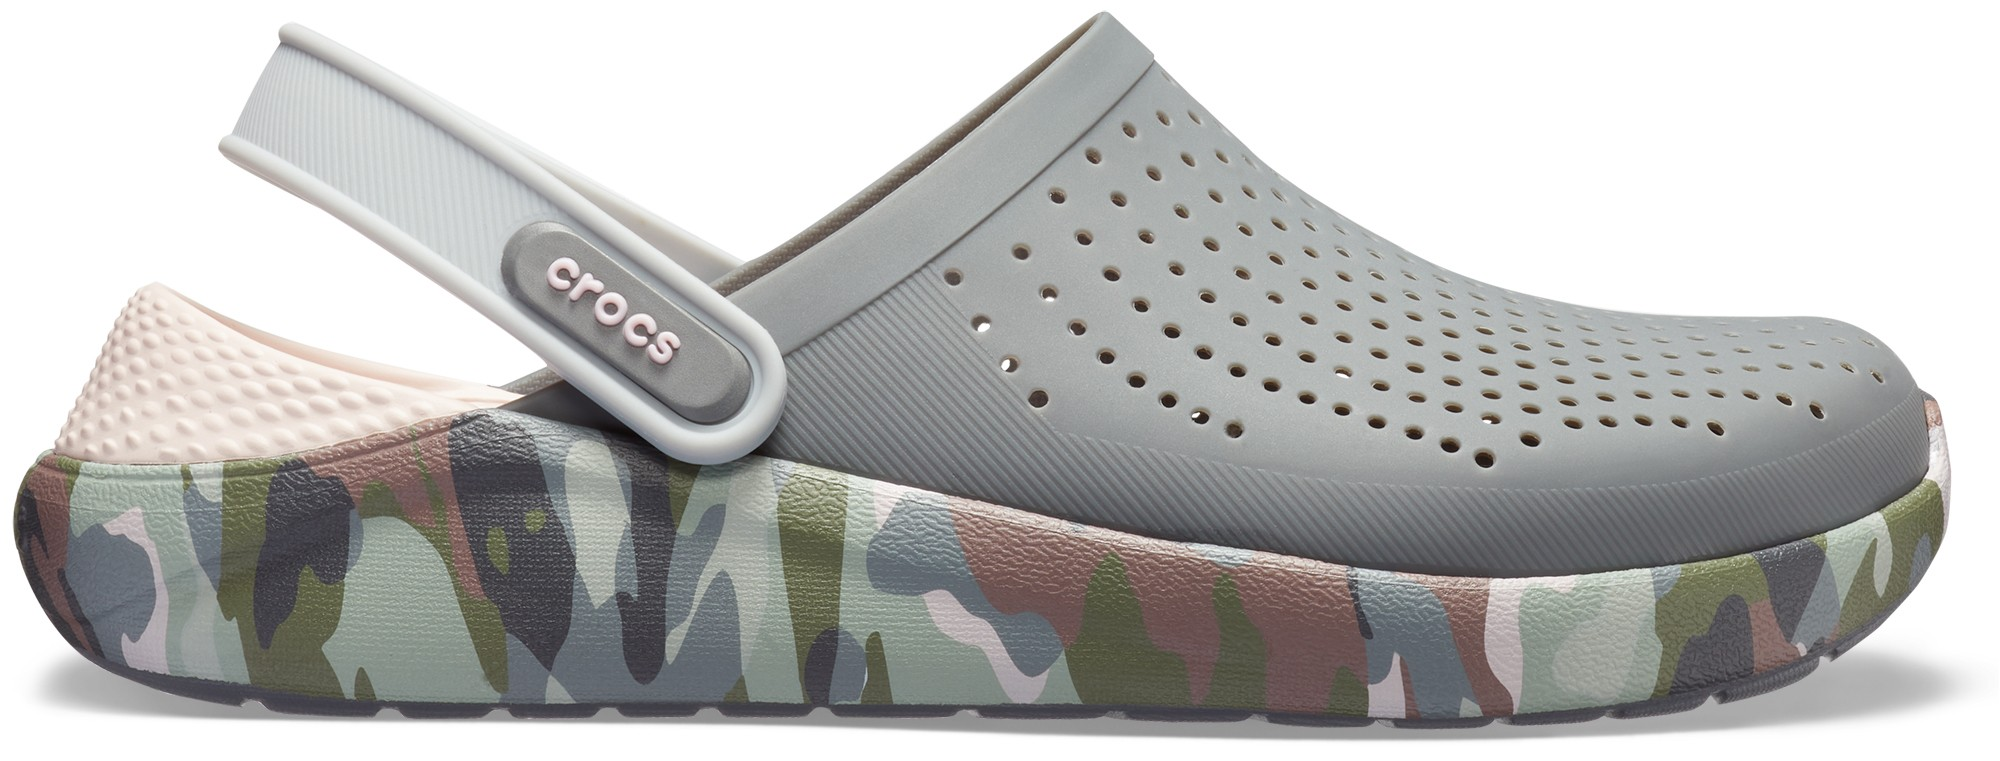 Crocs™ LiteRide Graphic Clog Charcoal/Camo 41